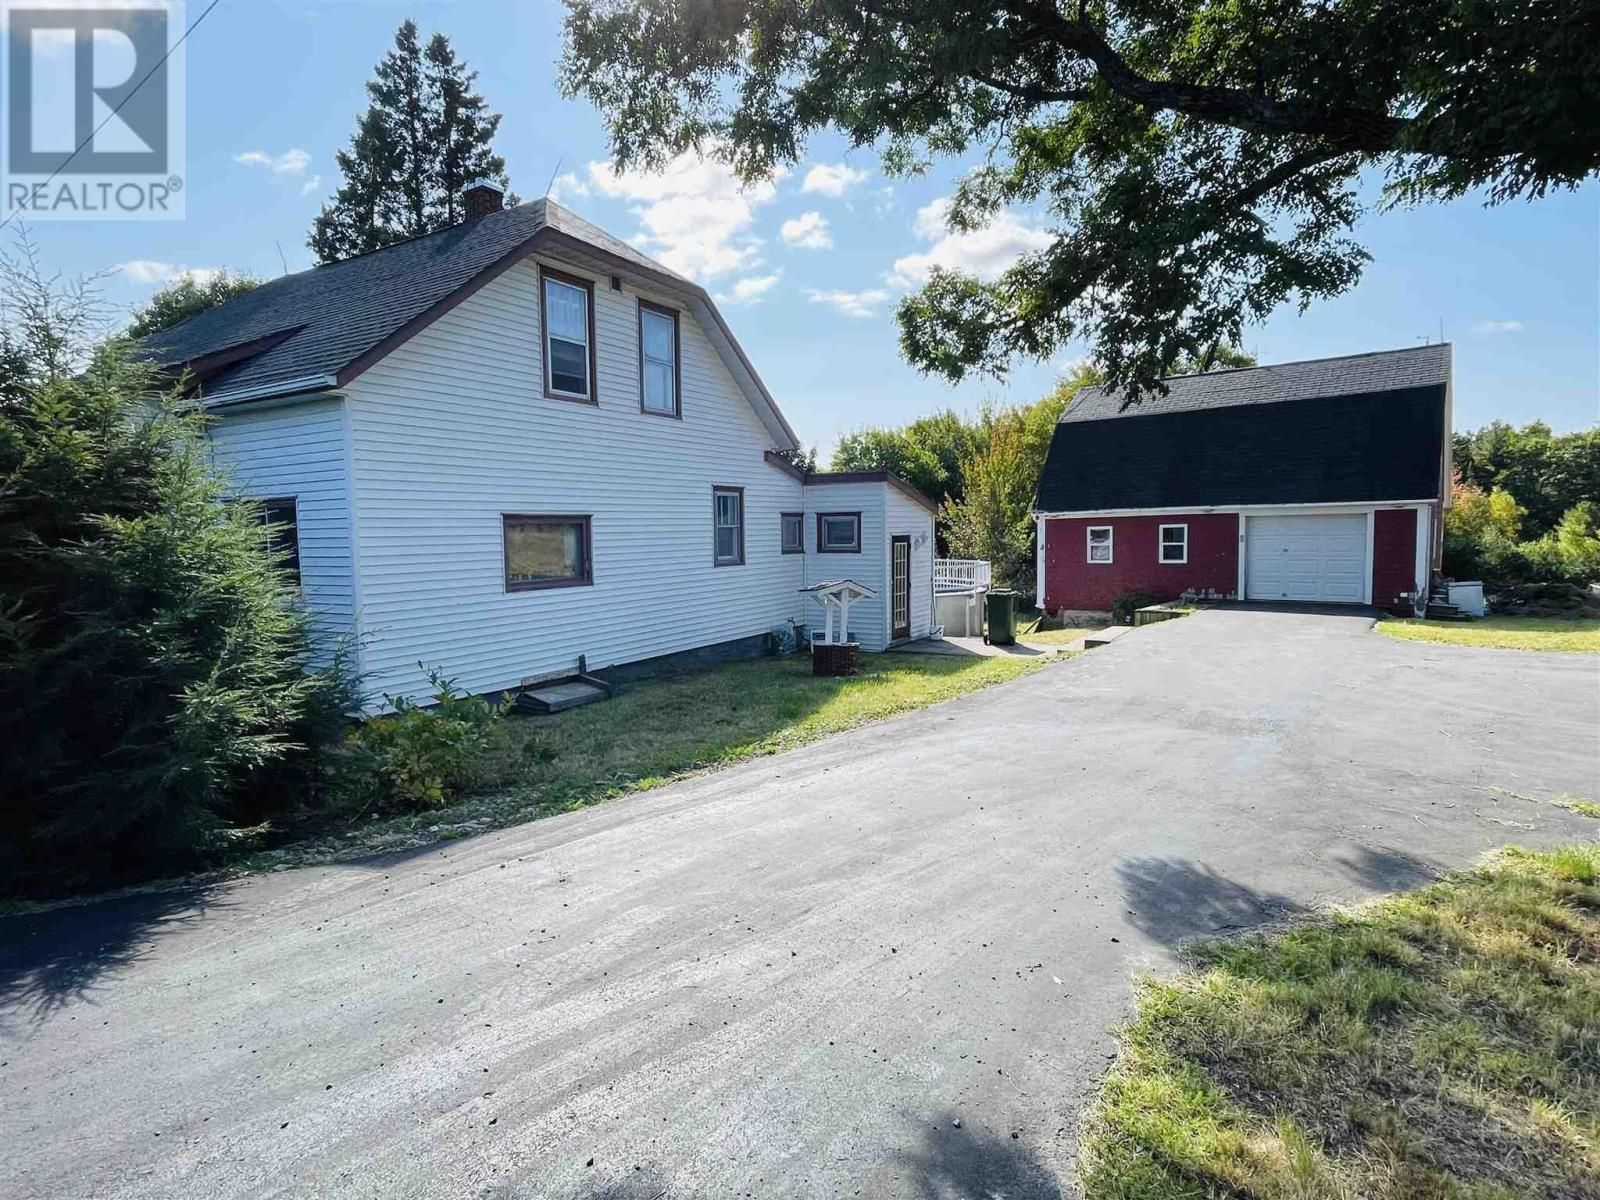 Main Photo: 85 Highway 208 in New Germany: House for sale : MLS®# 202125613